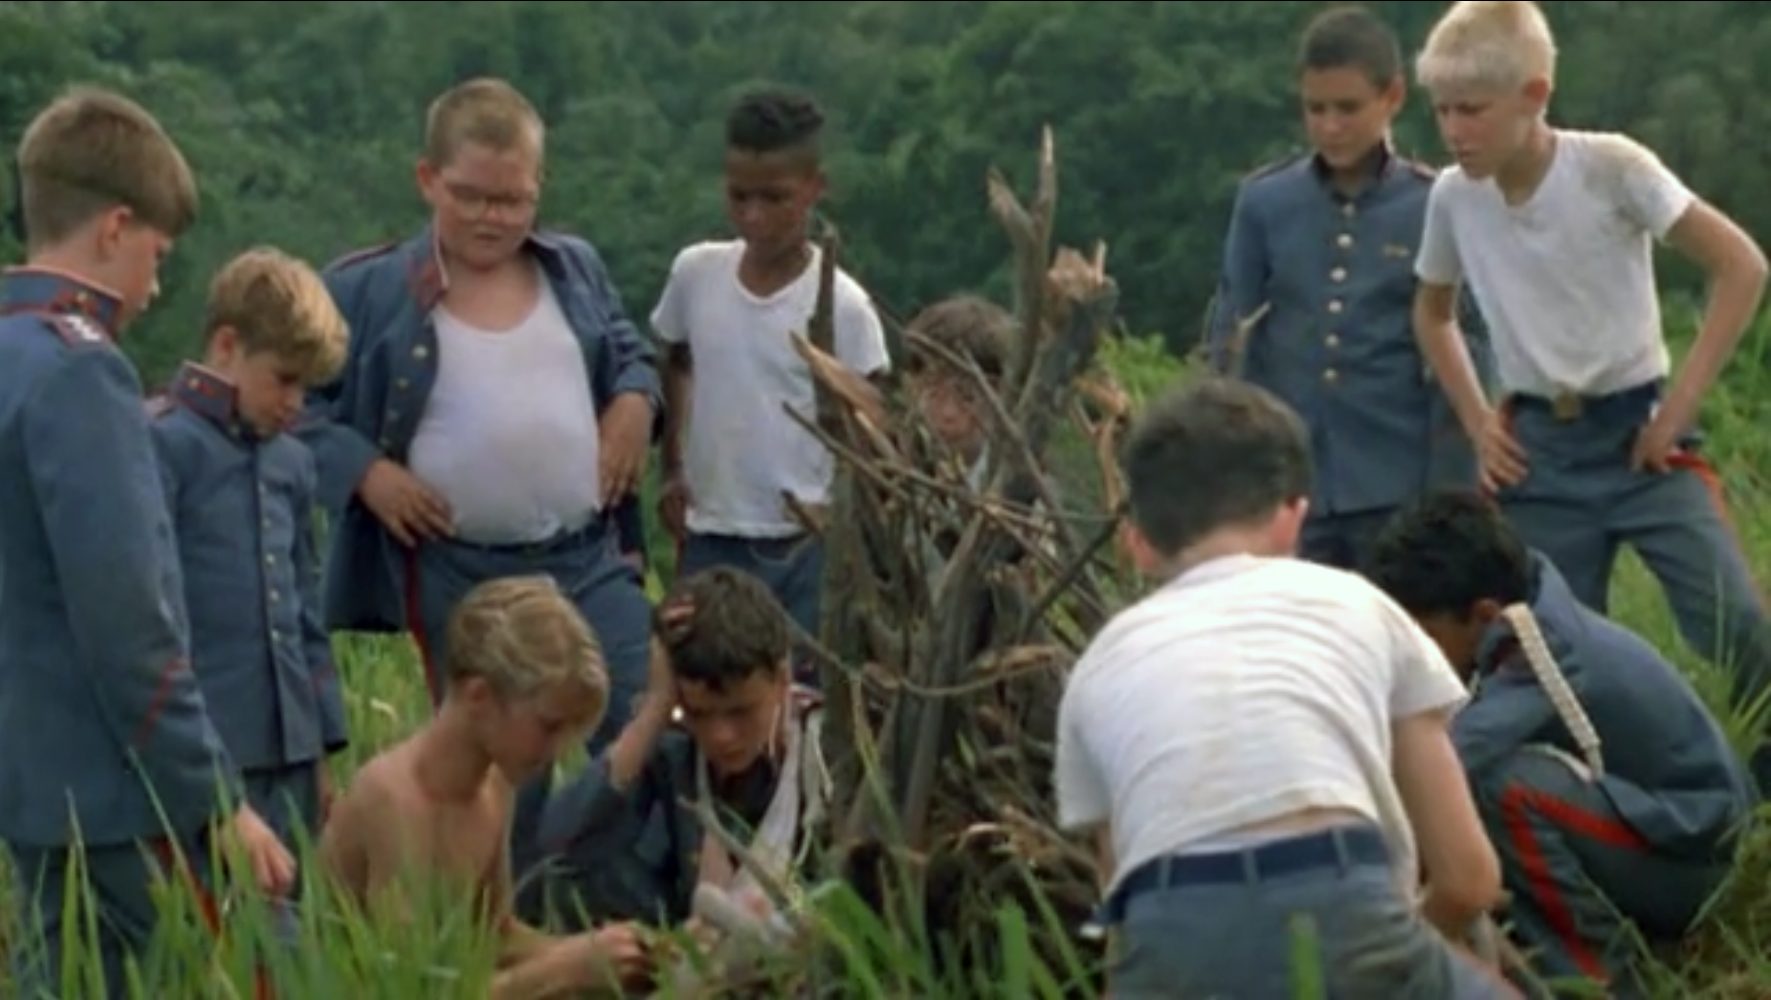 Lord of the flies, mvie